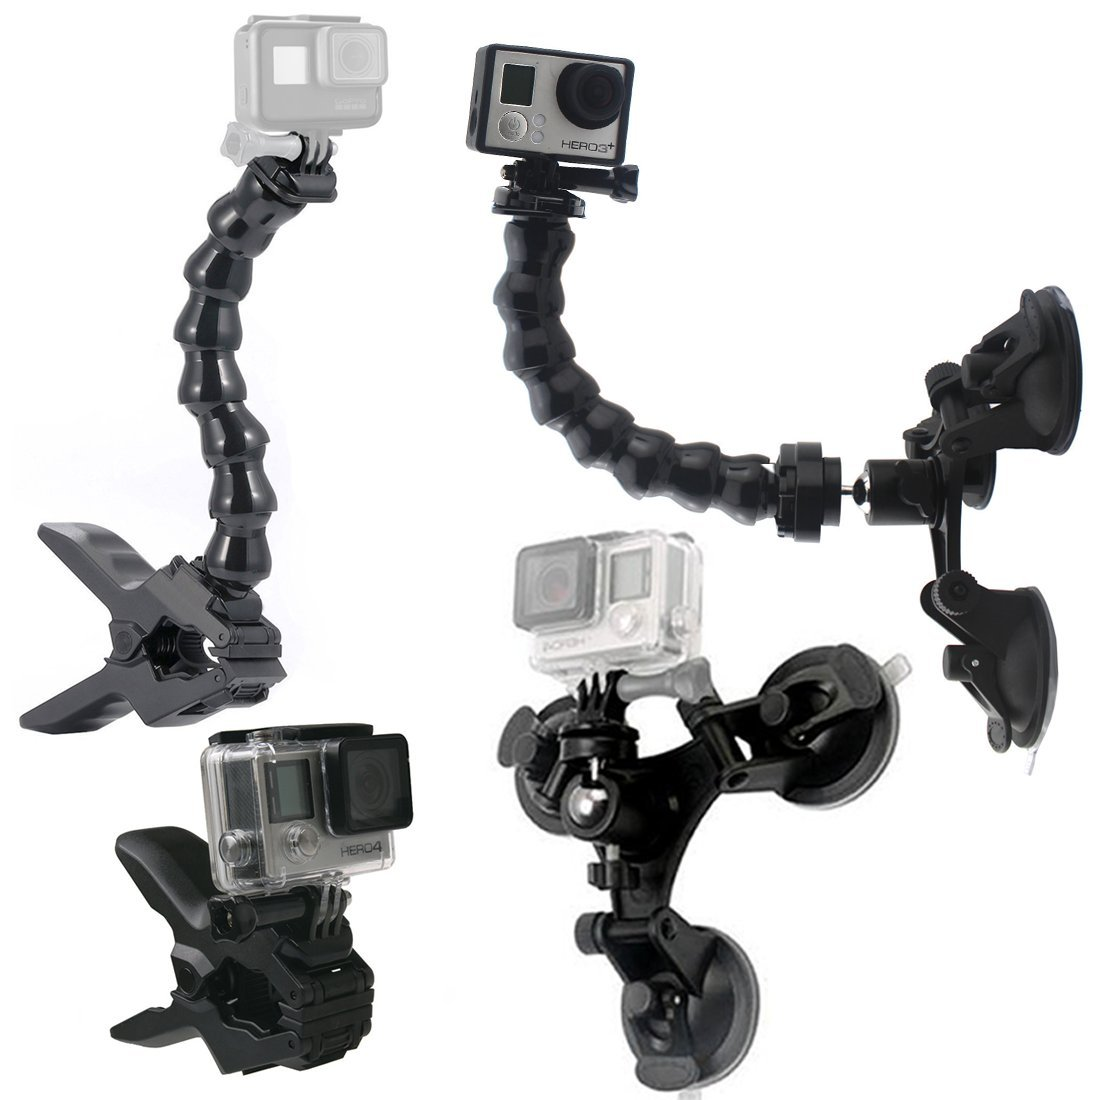 GreatCool Suction Cup Car Mount Holder with 360 Degree Mount+Jaws Flex Clamp Mount with Adjustable Gooseneck GoPro Accessories for GoPro Fusion Hero Session 6 5 4 3 2 and Other Action Camera